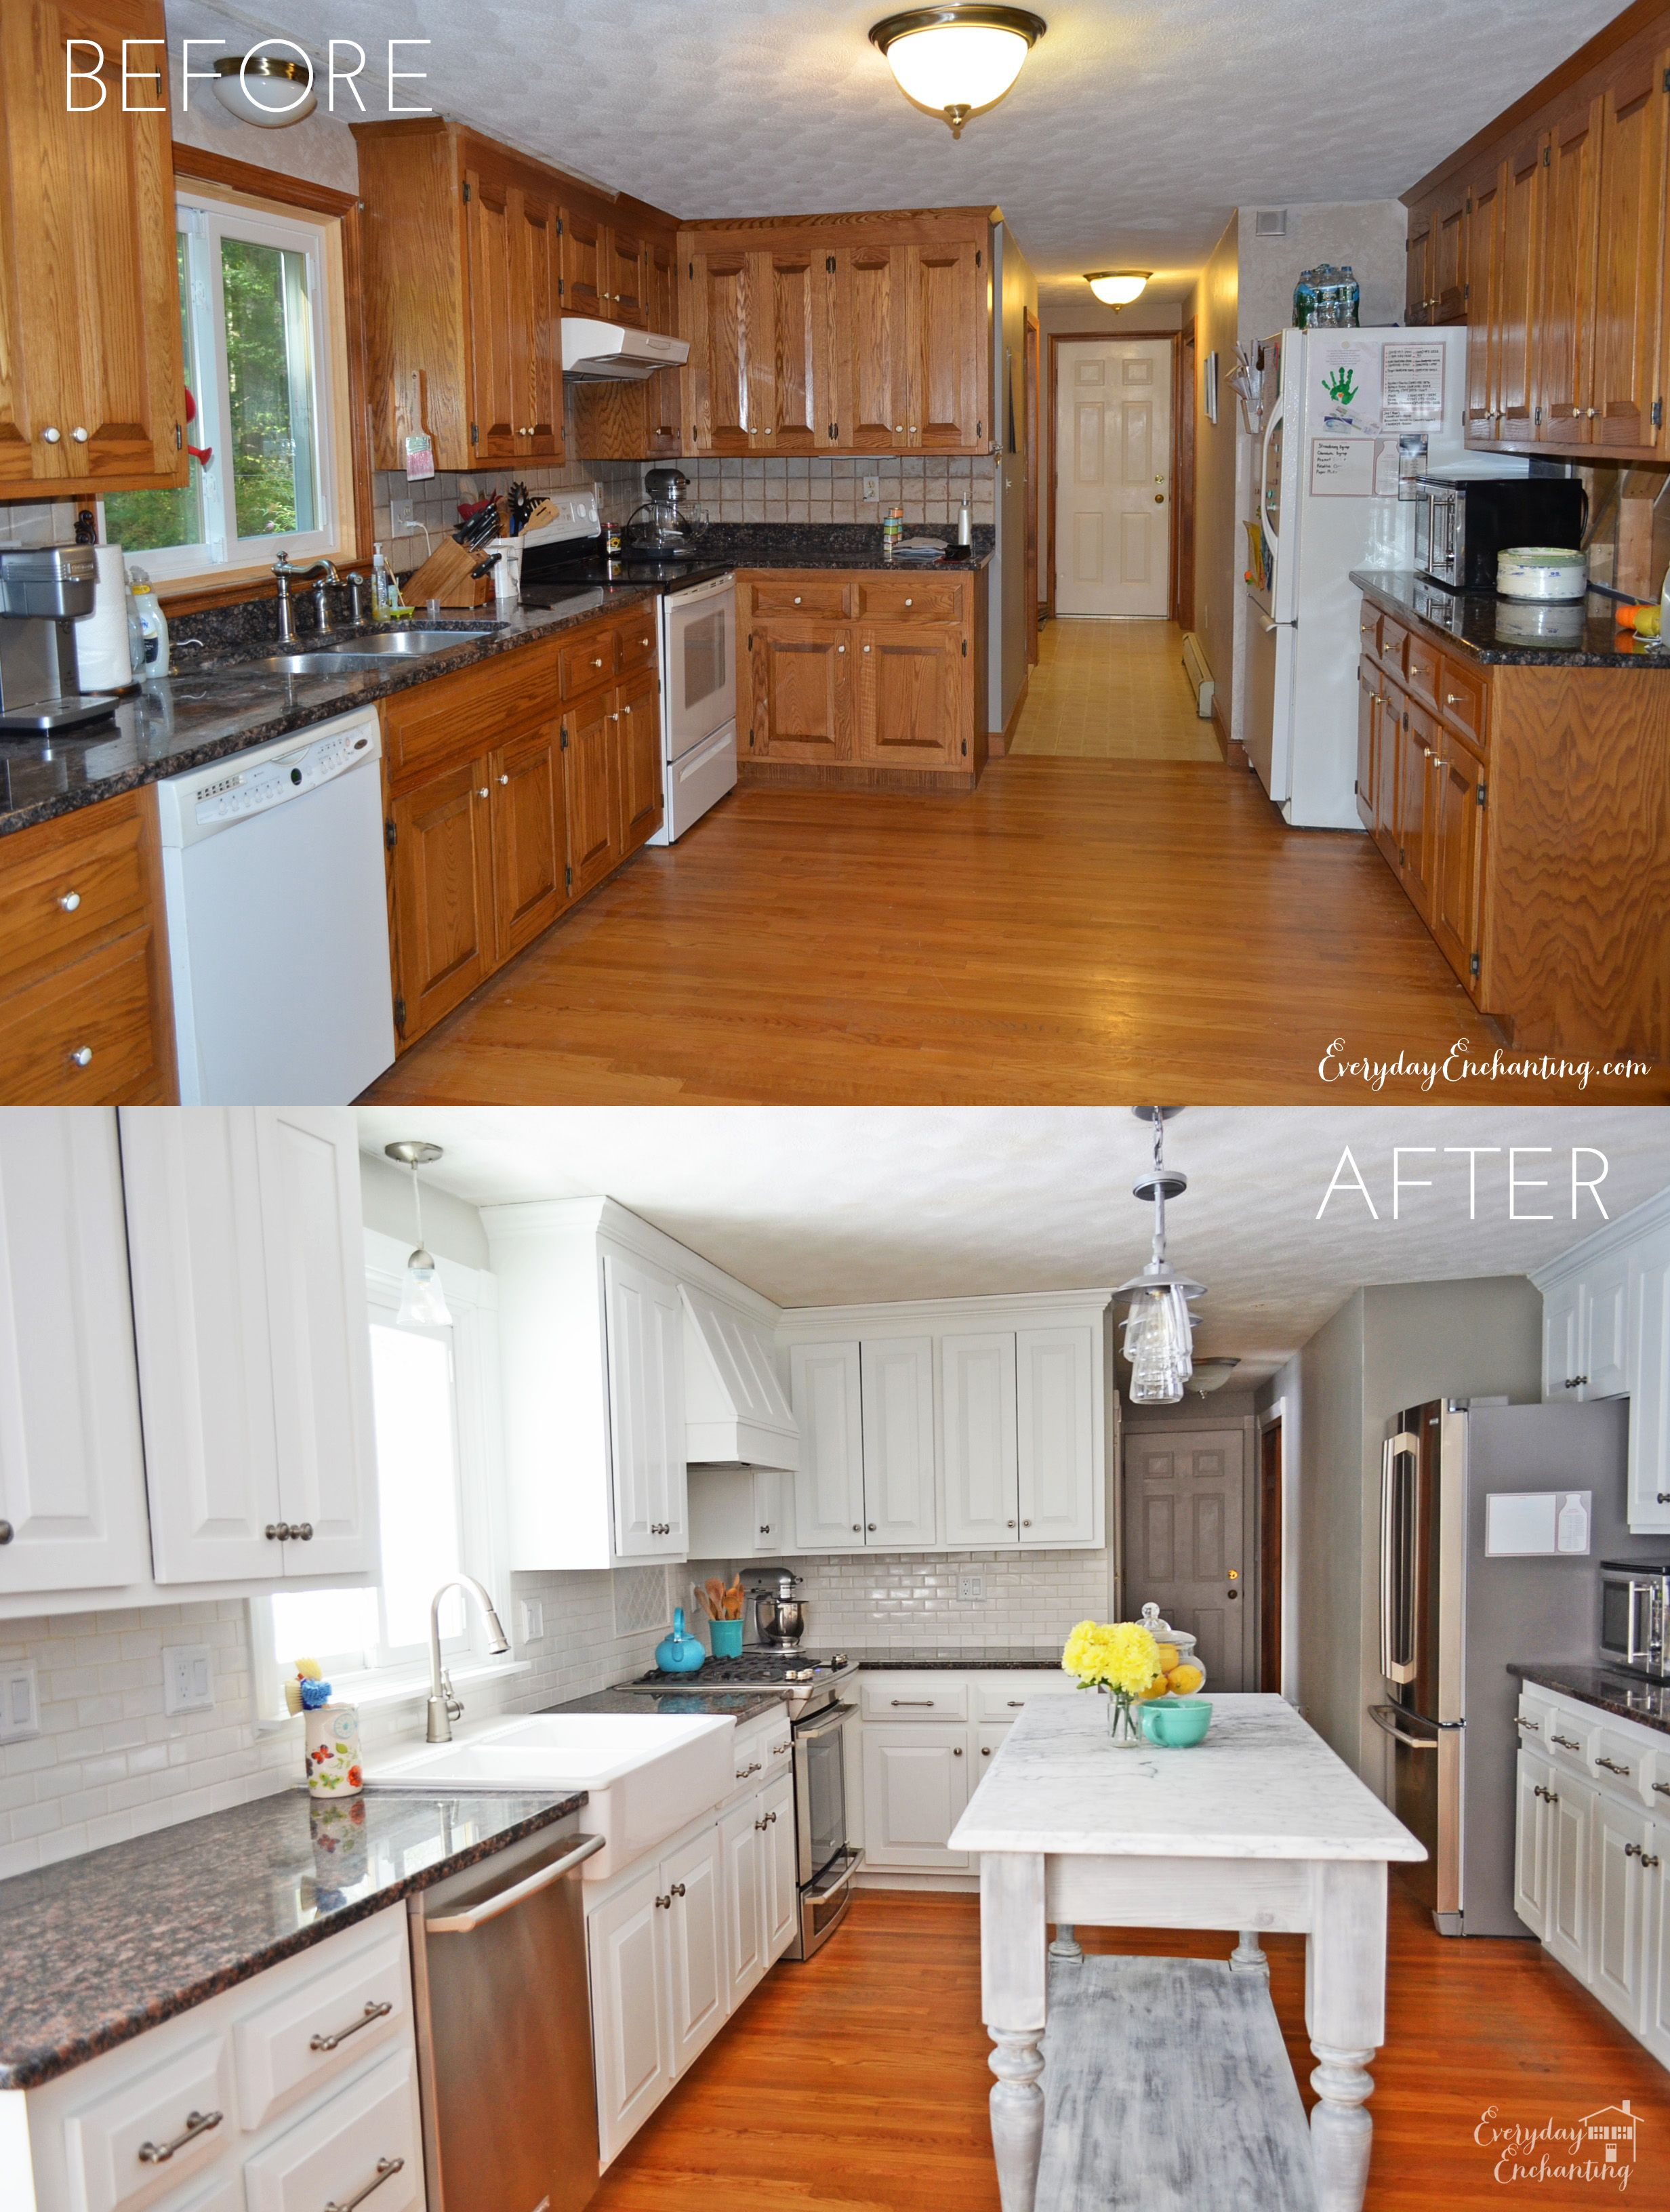 diy white kitchen reveal how a blogger transformed her kitchen cabinets from dark and dated - Oak Kitchen Cabinet Makeover